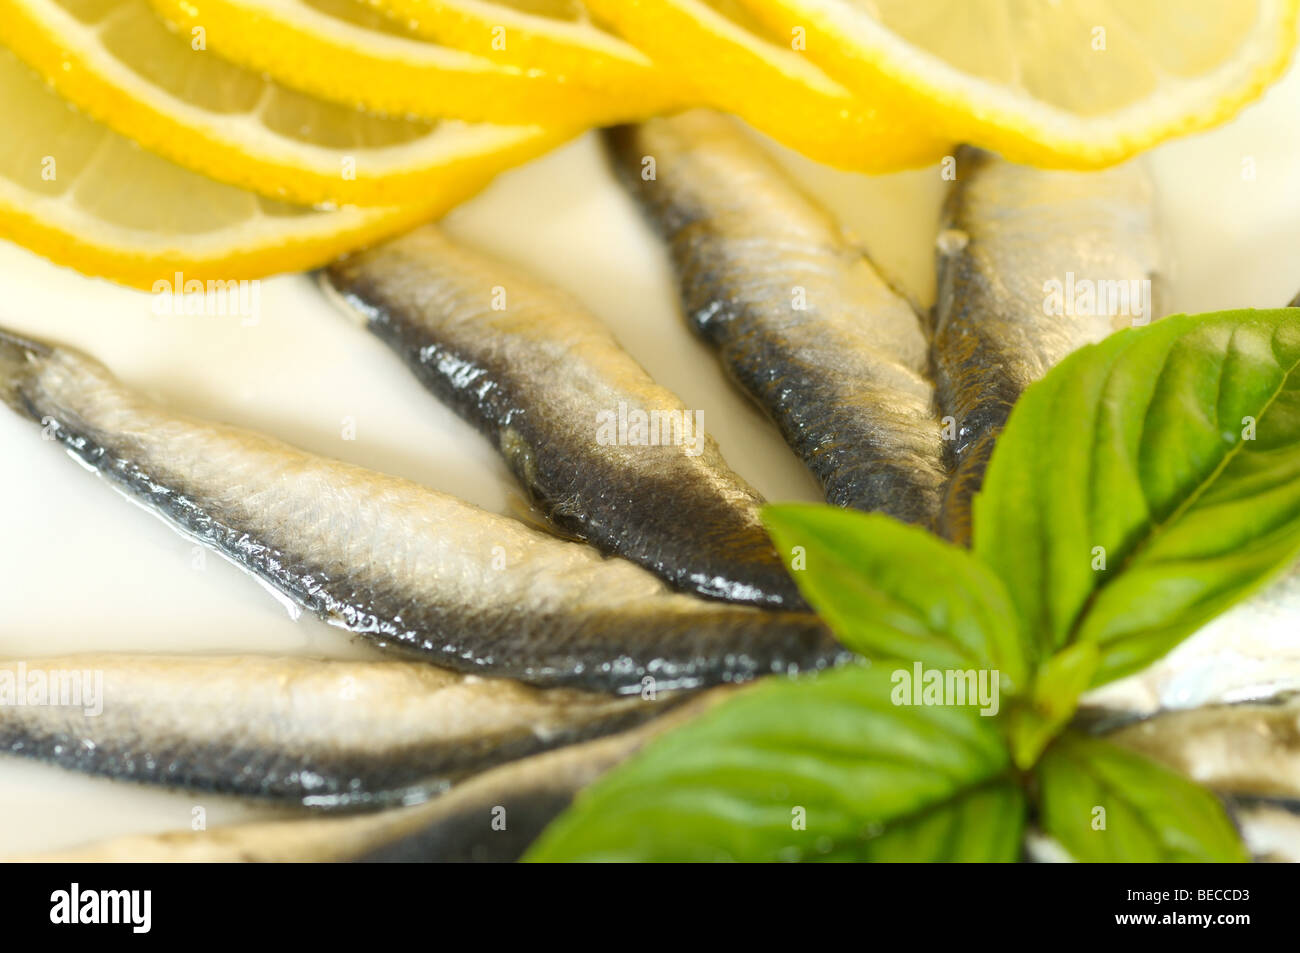 Salad made of marinated sprats - Stock Image